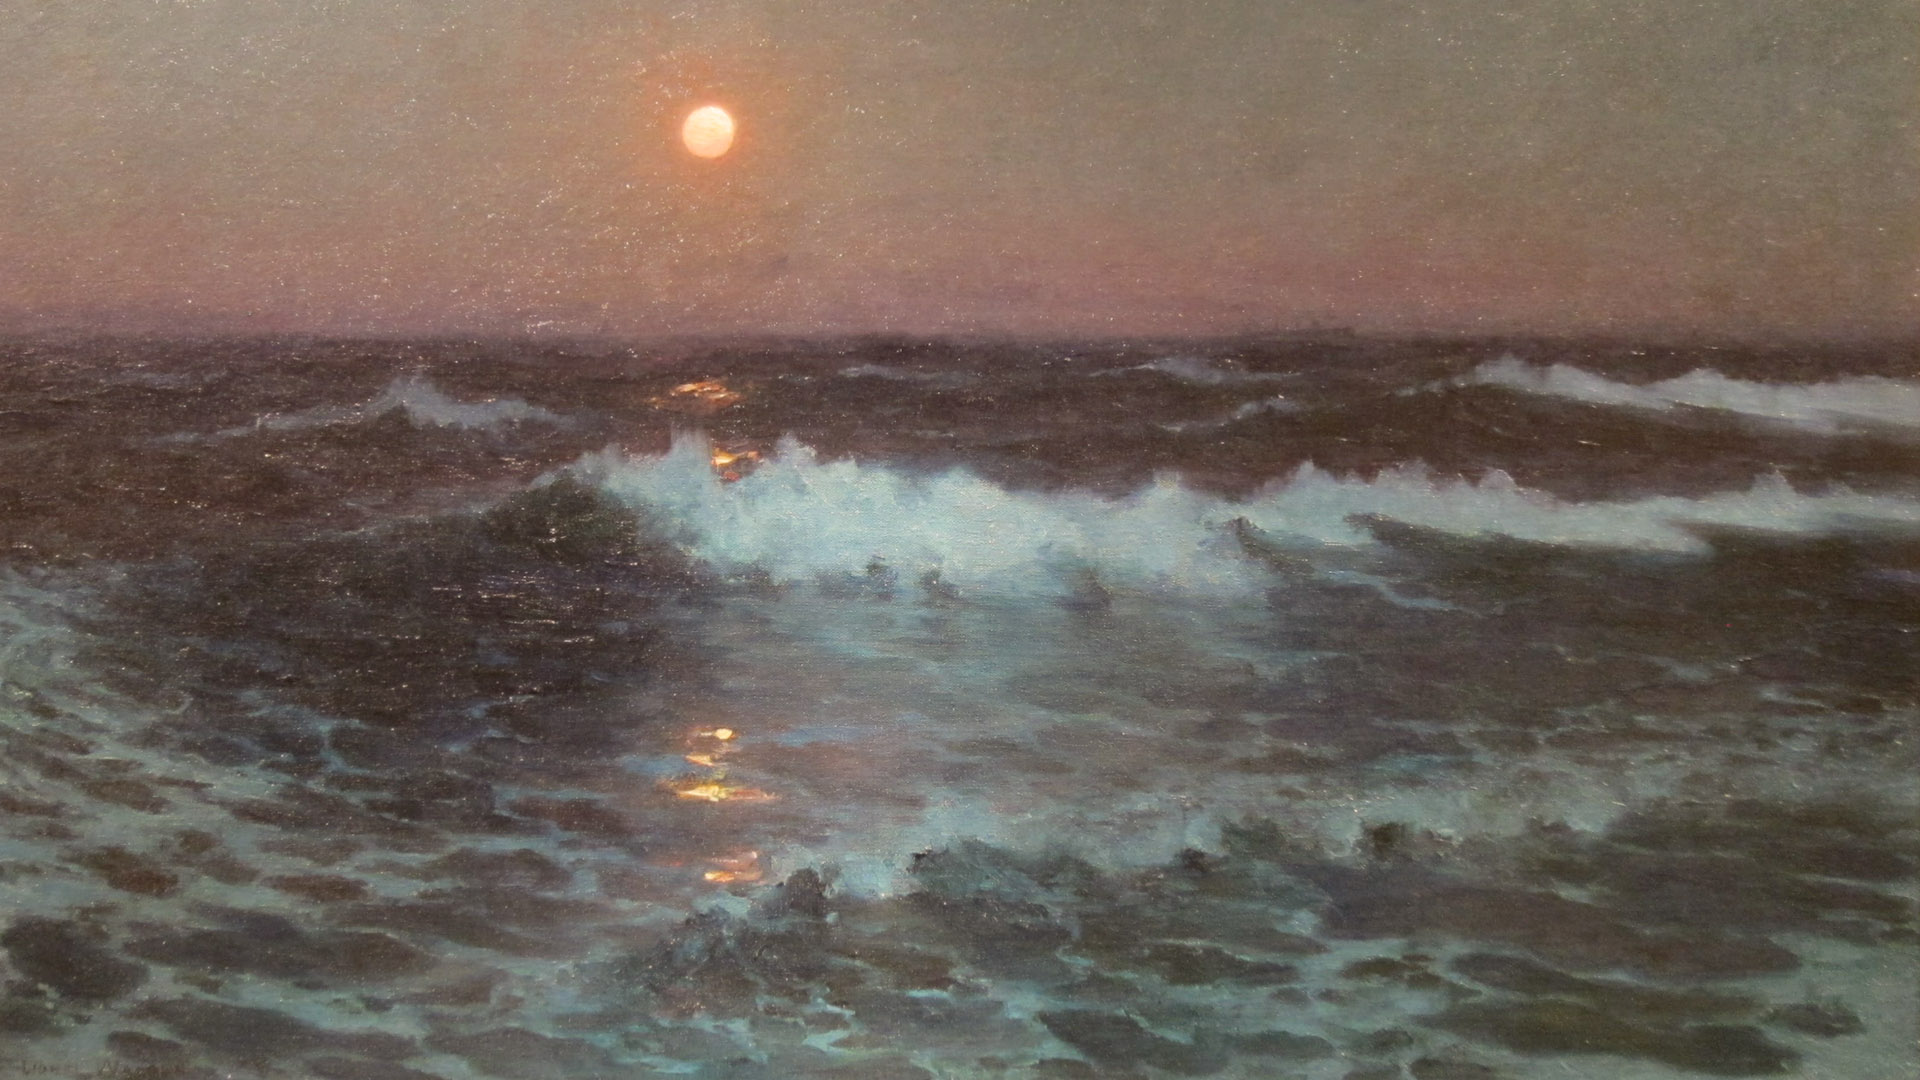 Lionel Walden - Moonlight 1920x1080